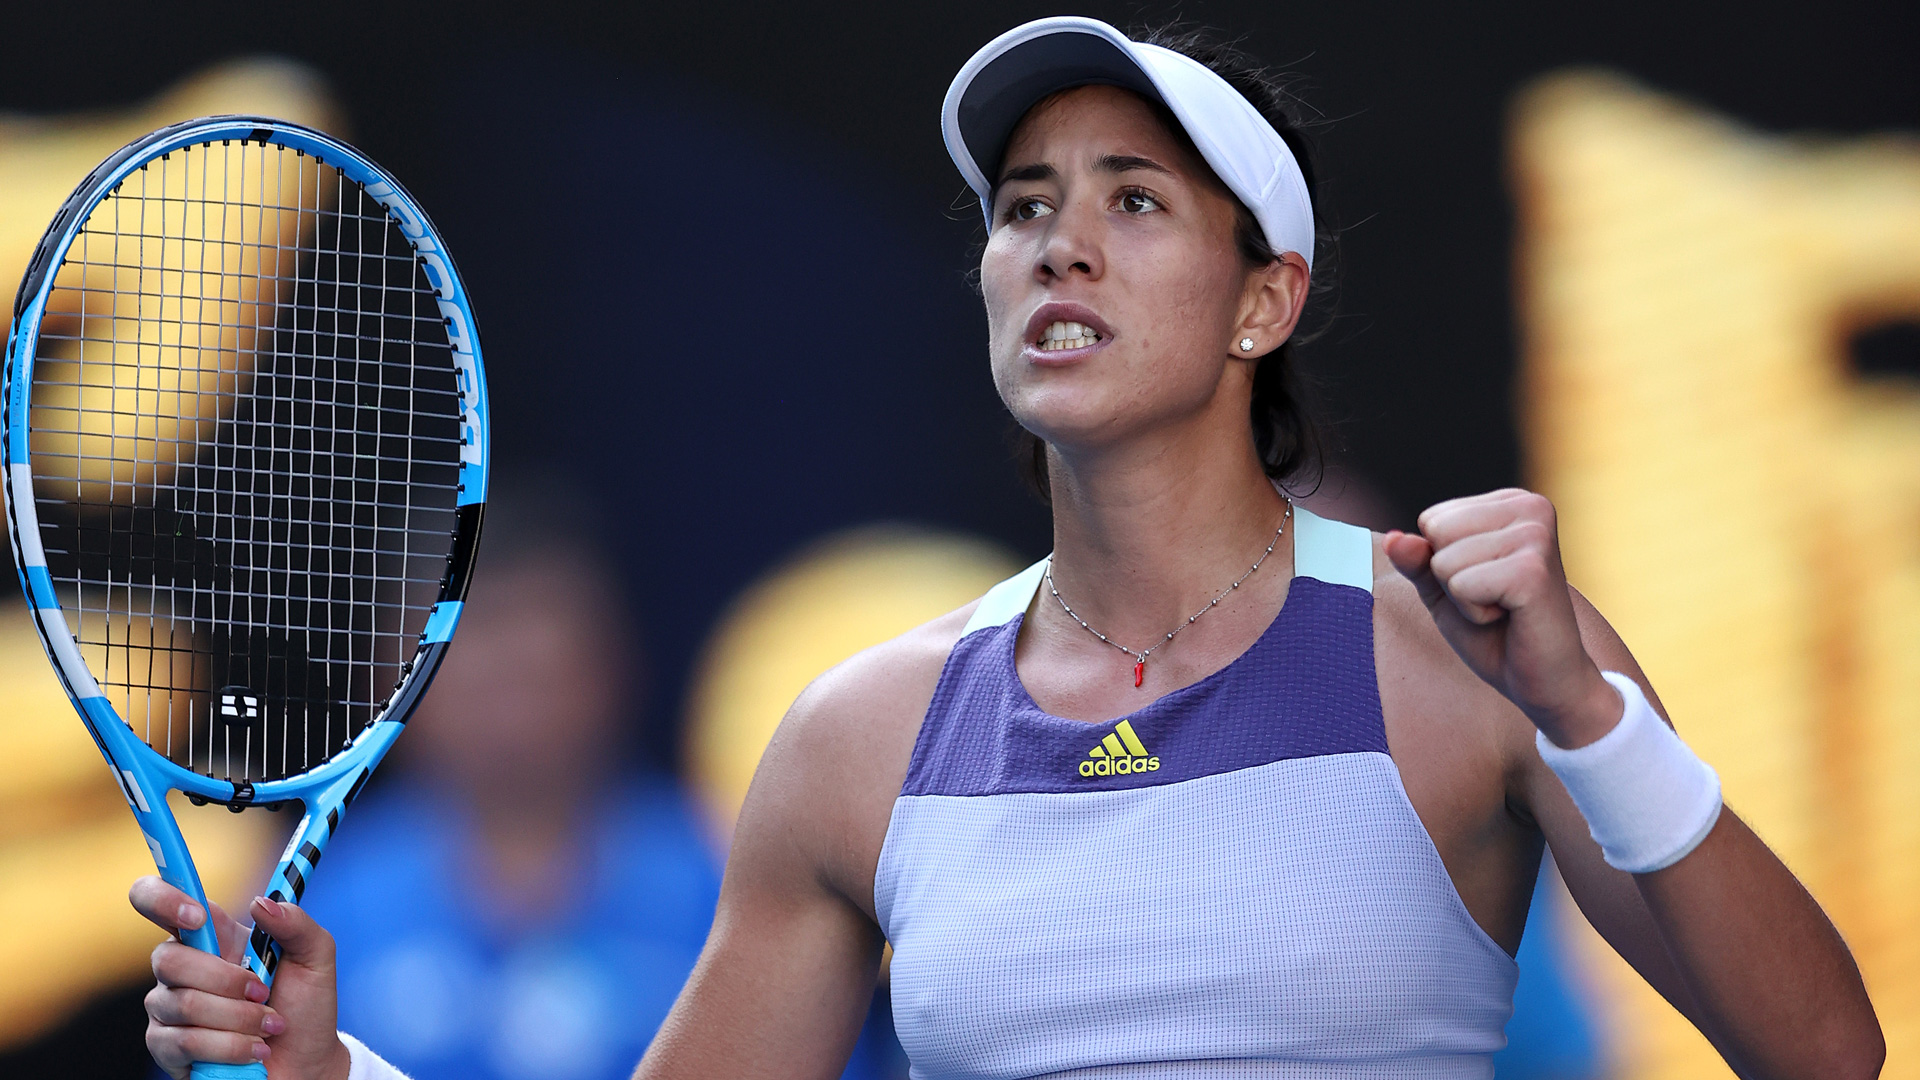 Australian Open 2020: Serena, Clijsters among the group unseeded Muguruza can join